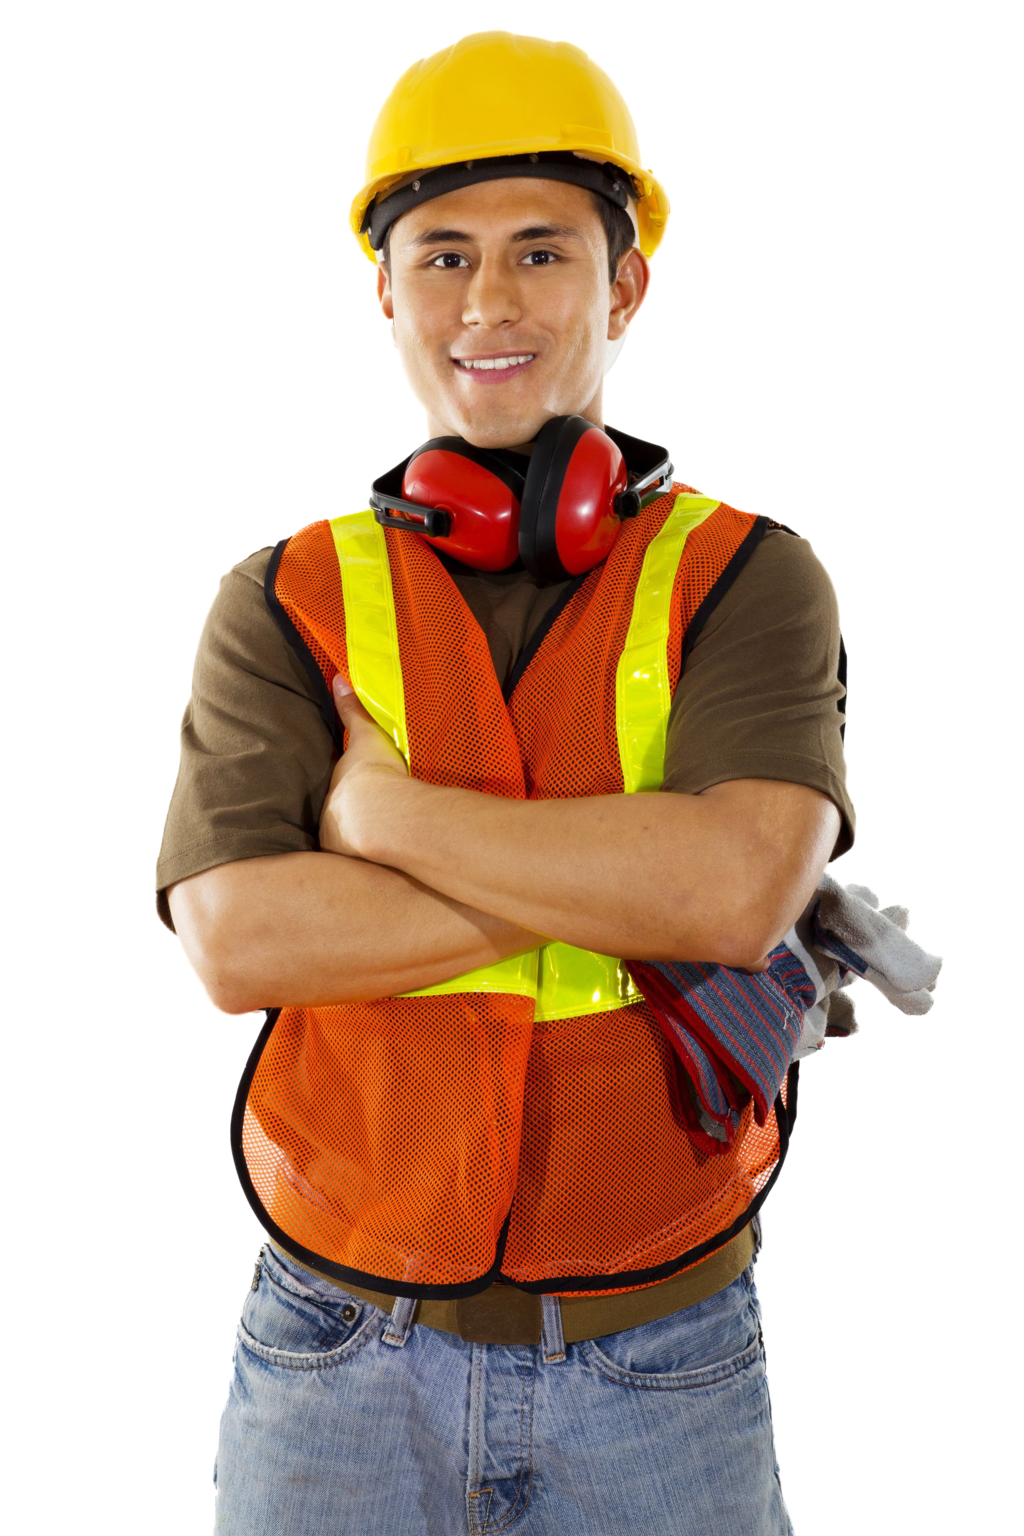 Engineering clipart builder. Industrail worker png image